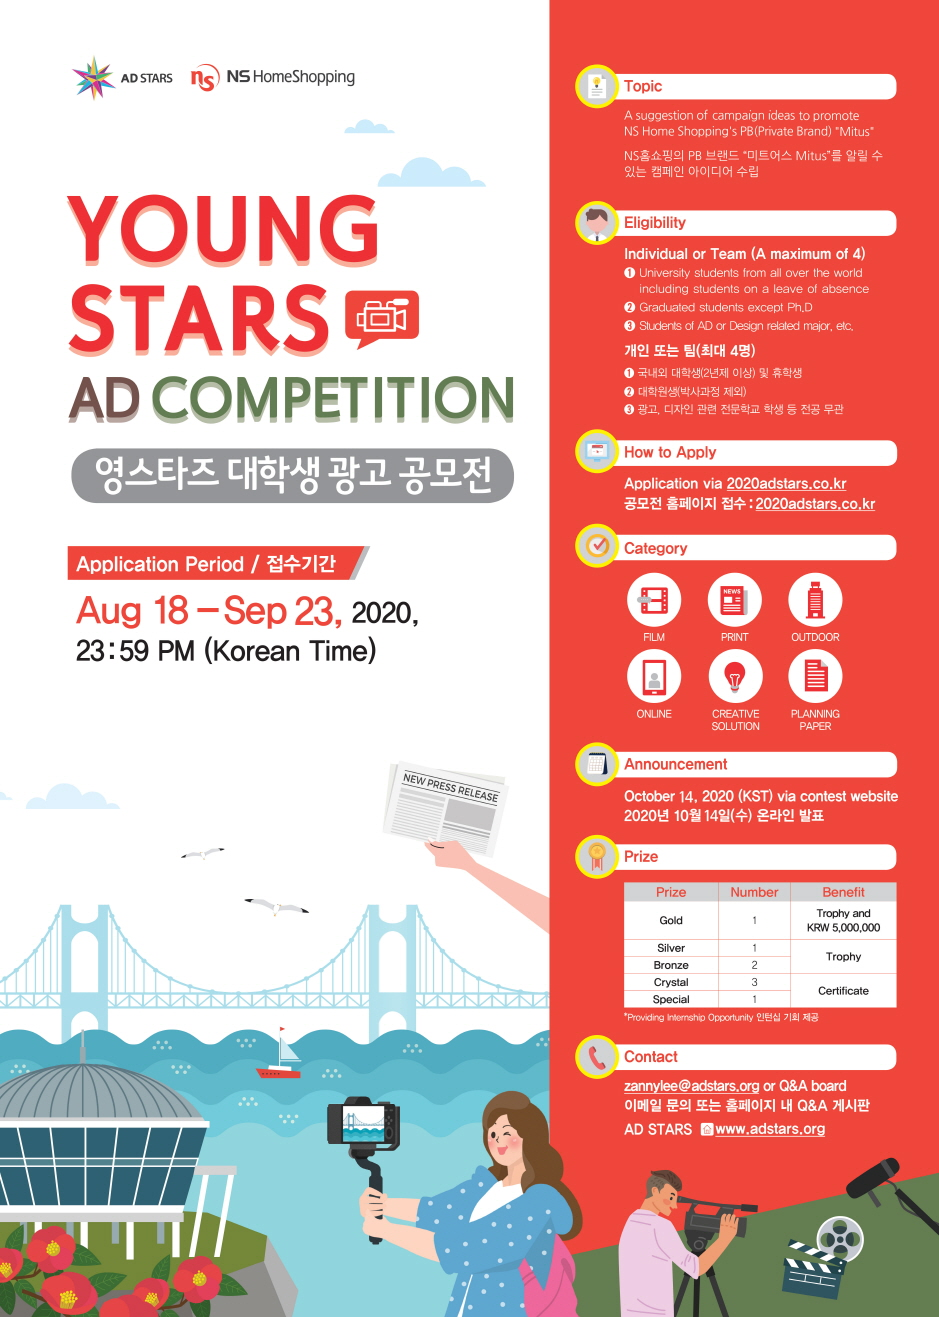 Would you like to be discovered as a New Star or Young Star? Enter before 23 Sept to win $4,000